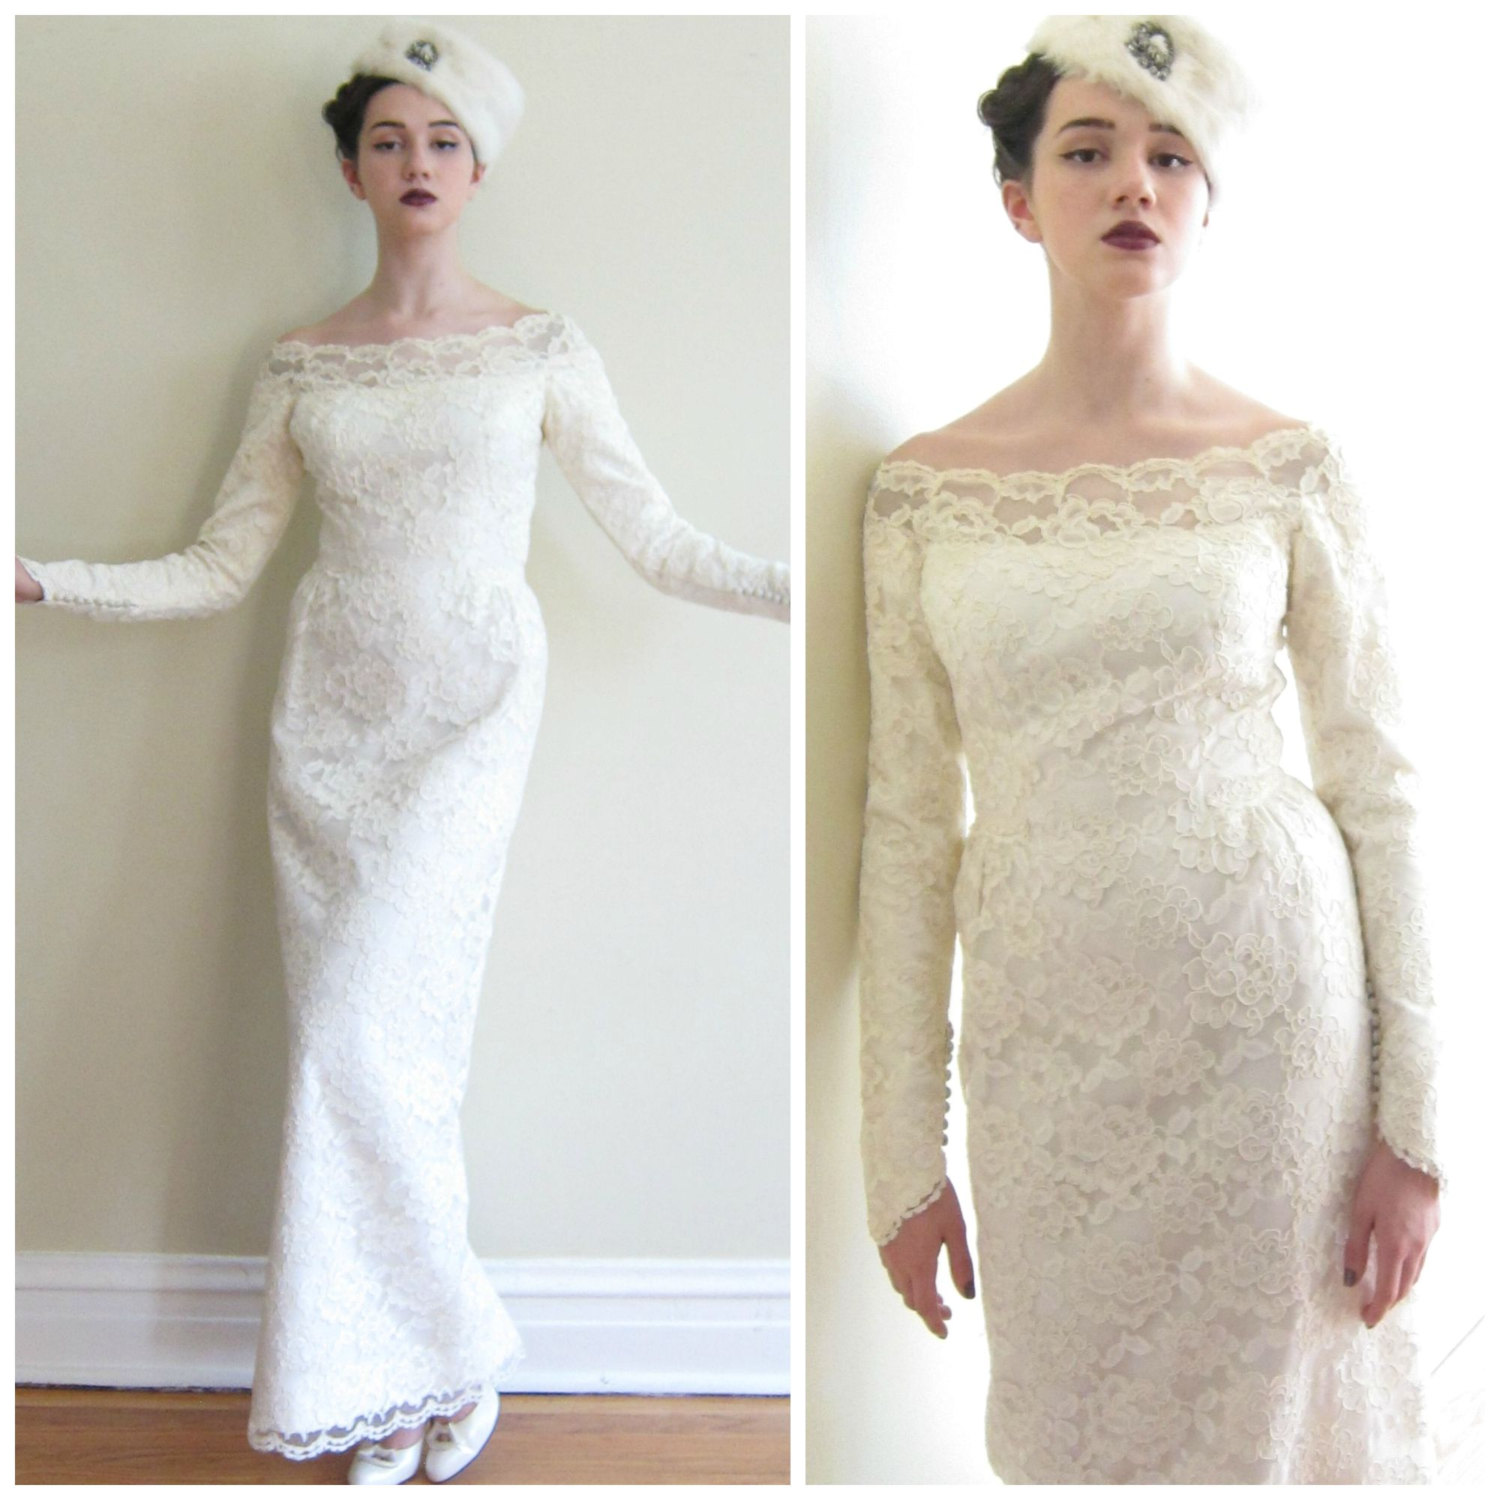 17 Seriously Stunning Wedding Dresses Under $500